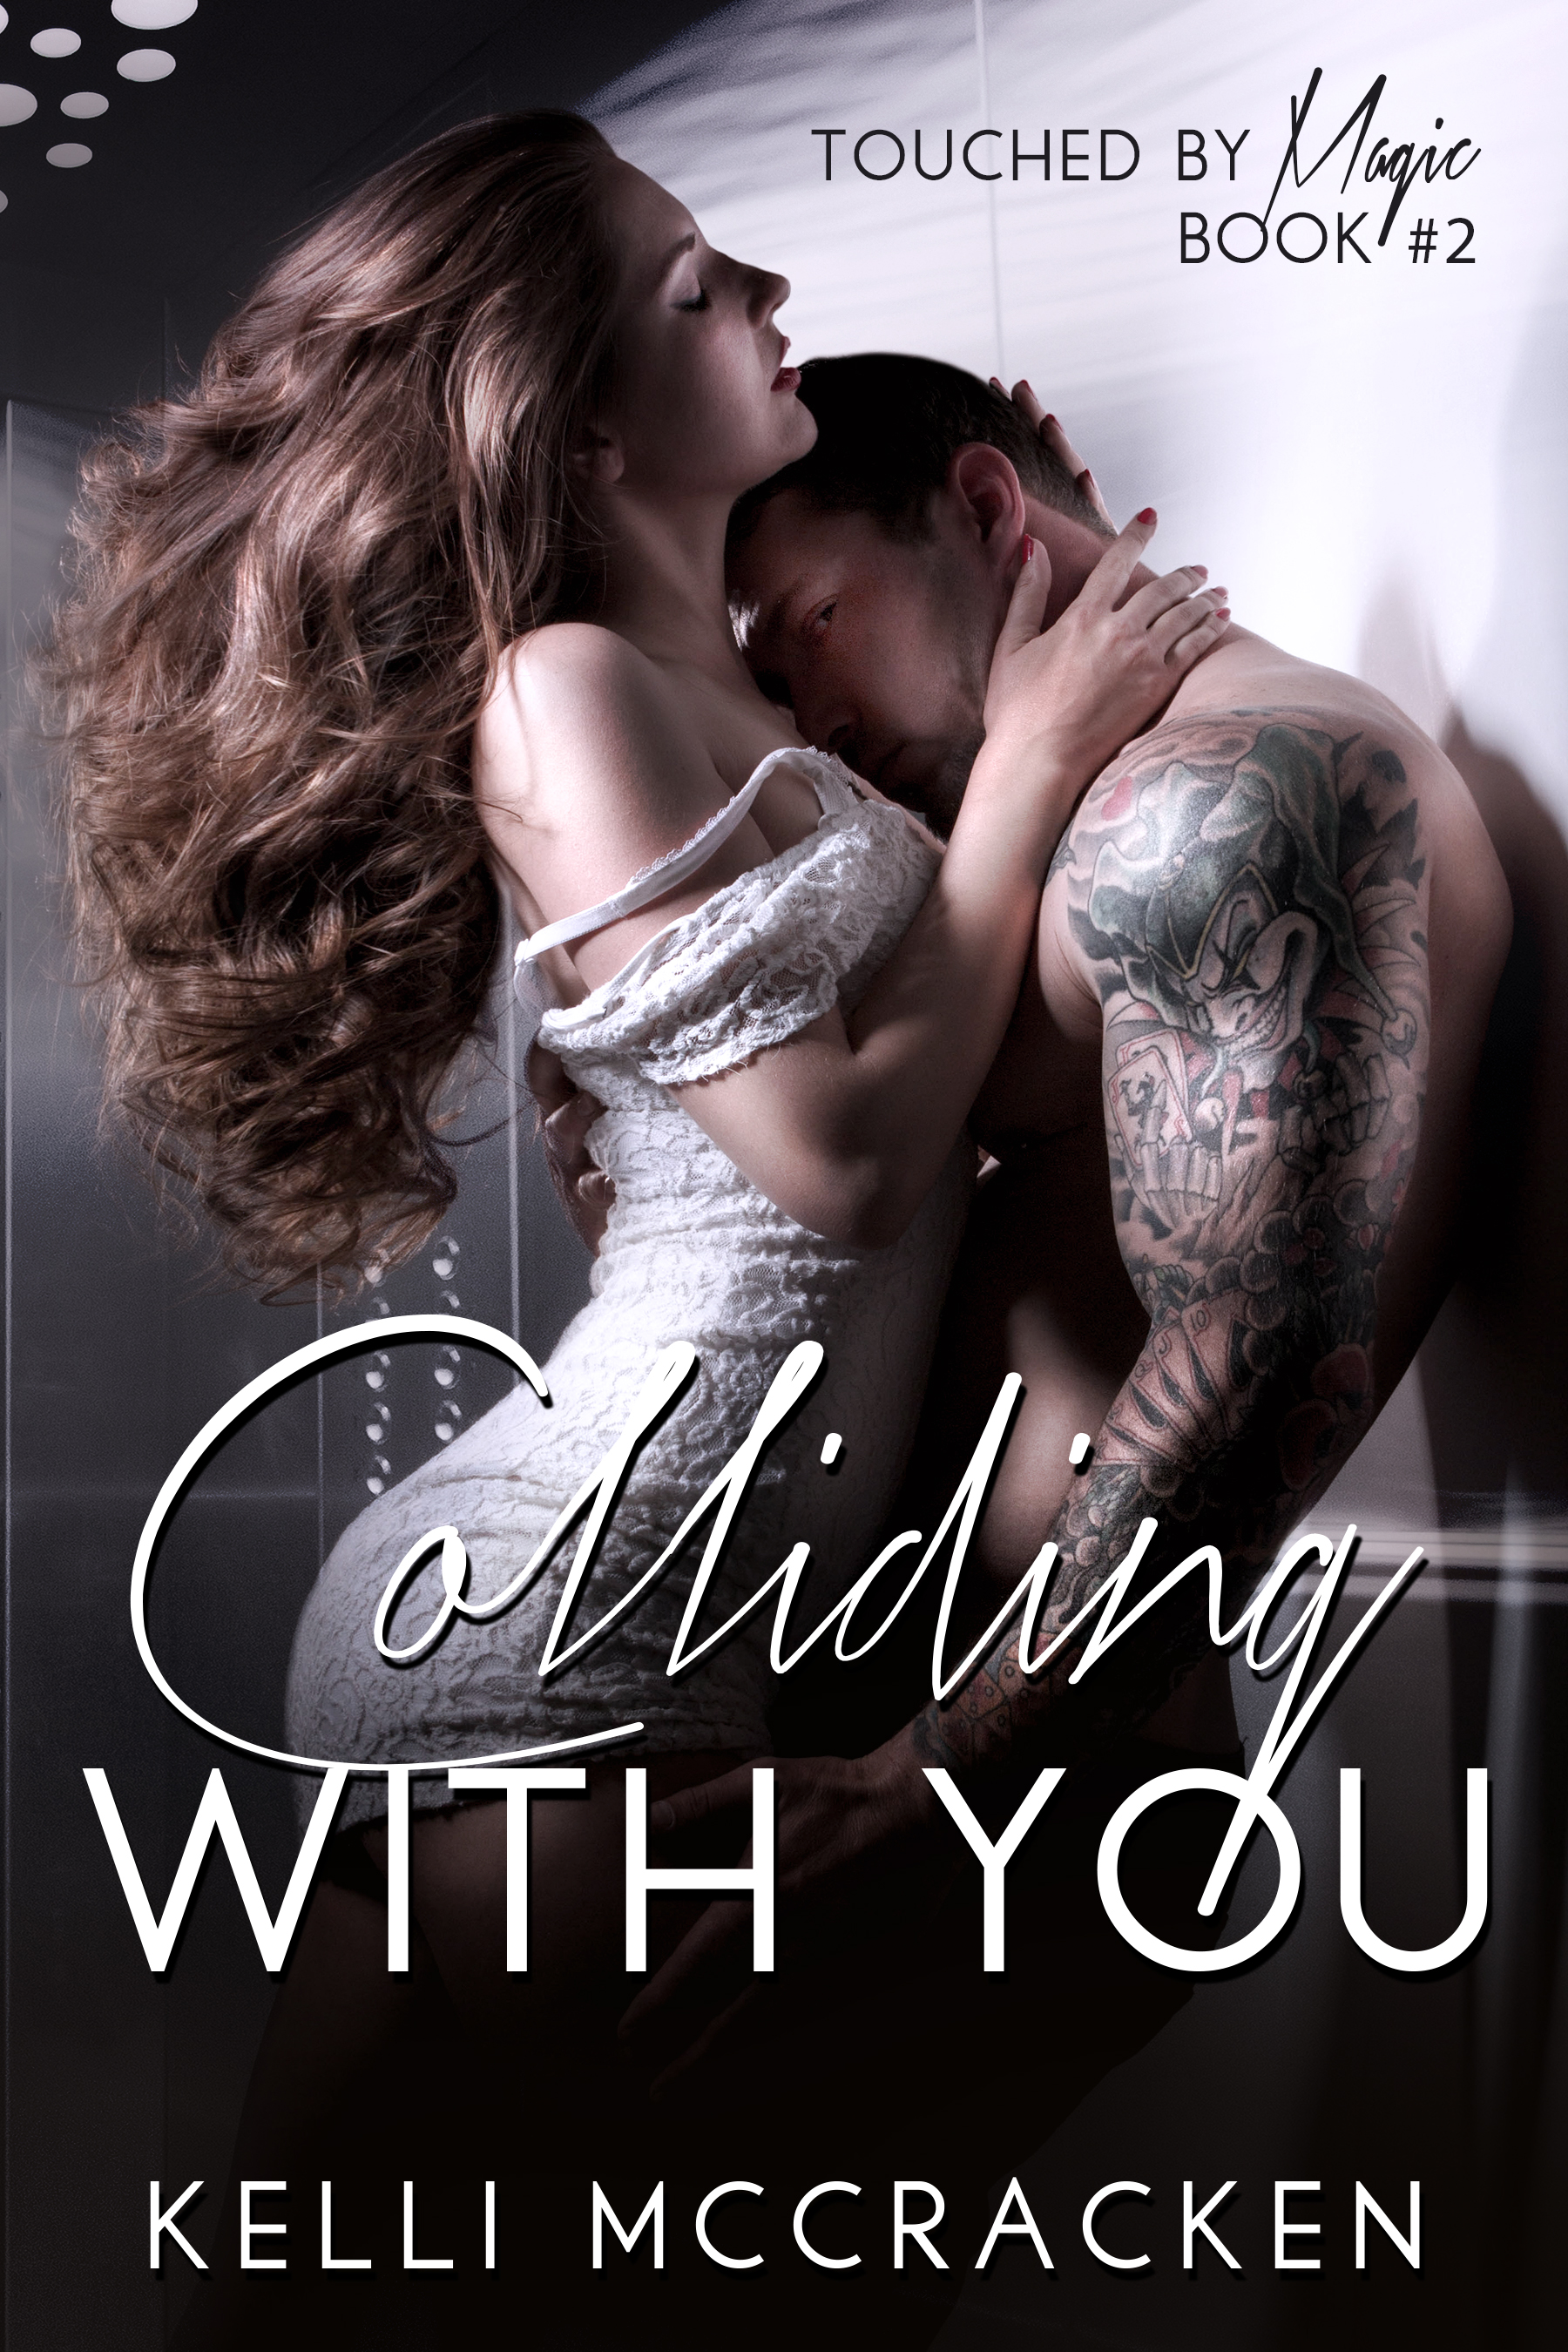 Colliding with You (Touched by Magic #2)